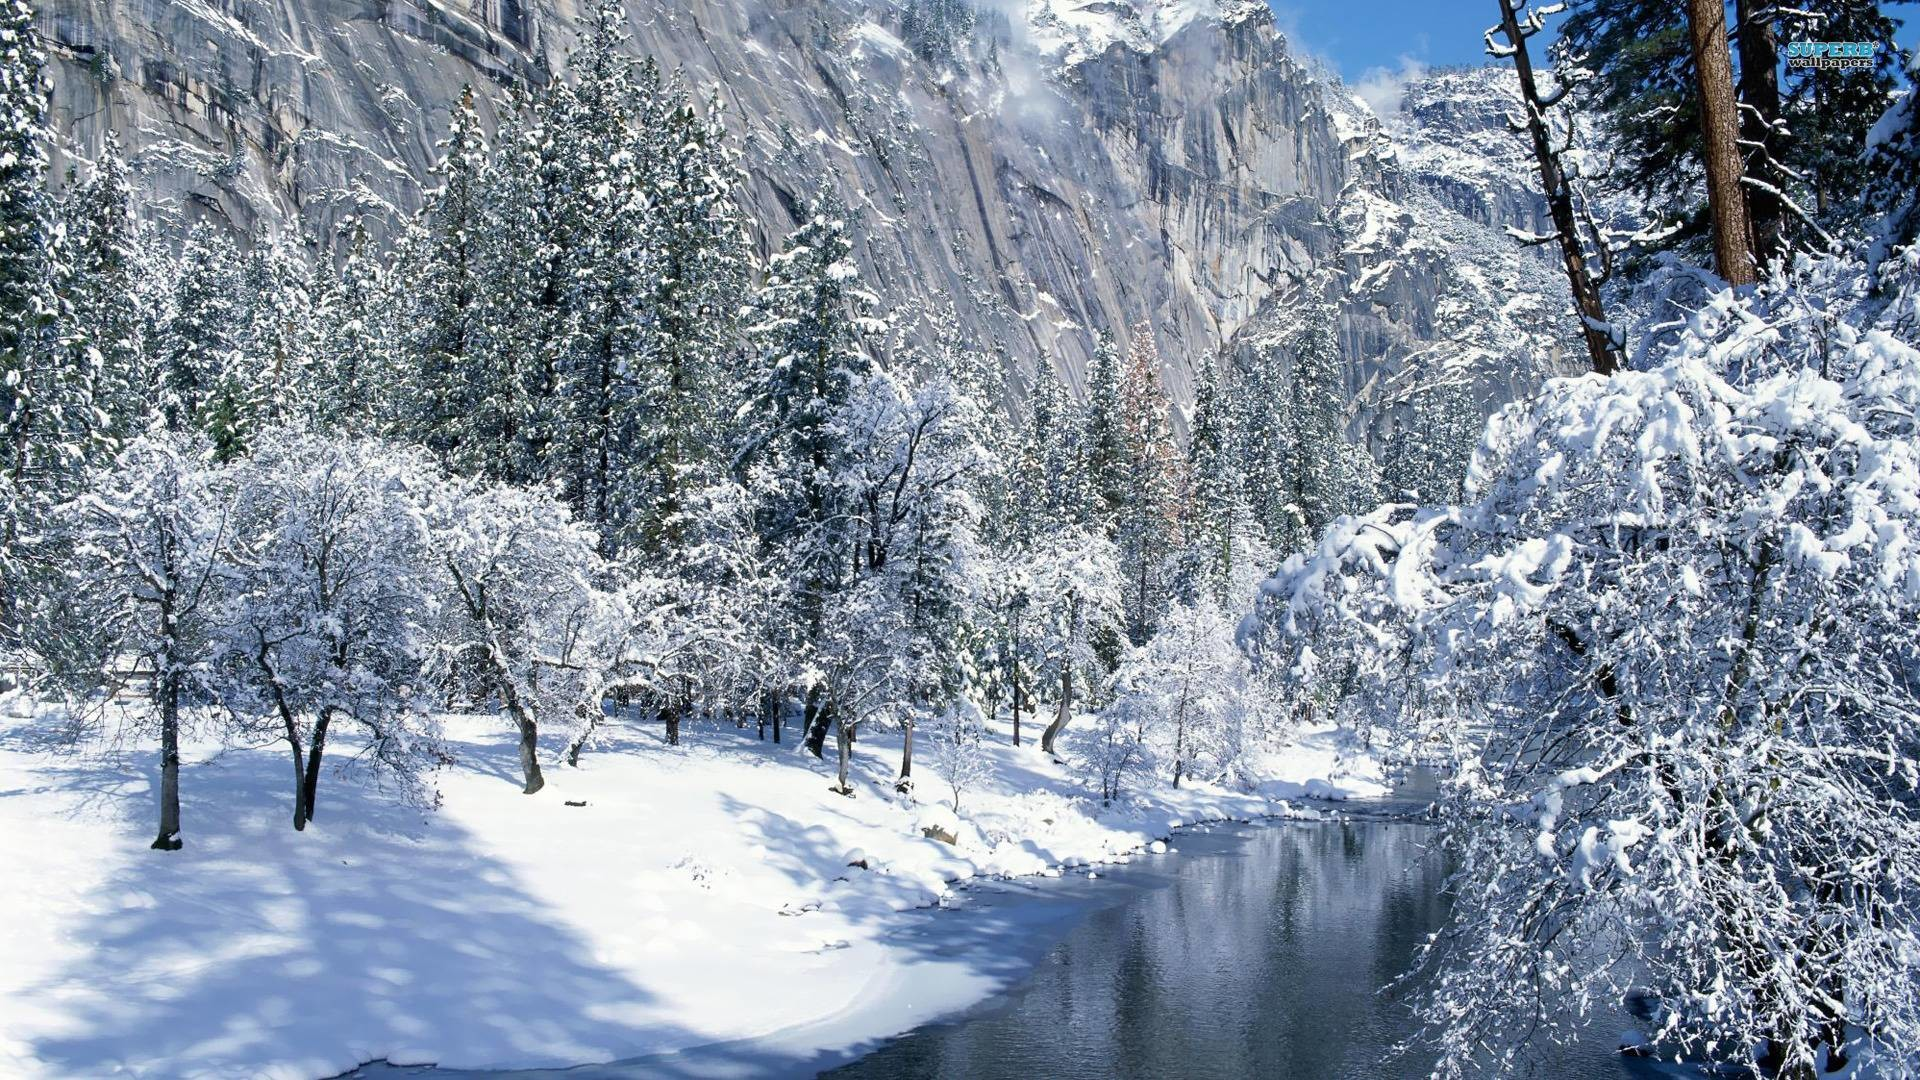 Snow screensavers and wallpaper 60 images - Mountain screensavers free ...